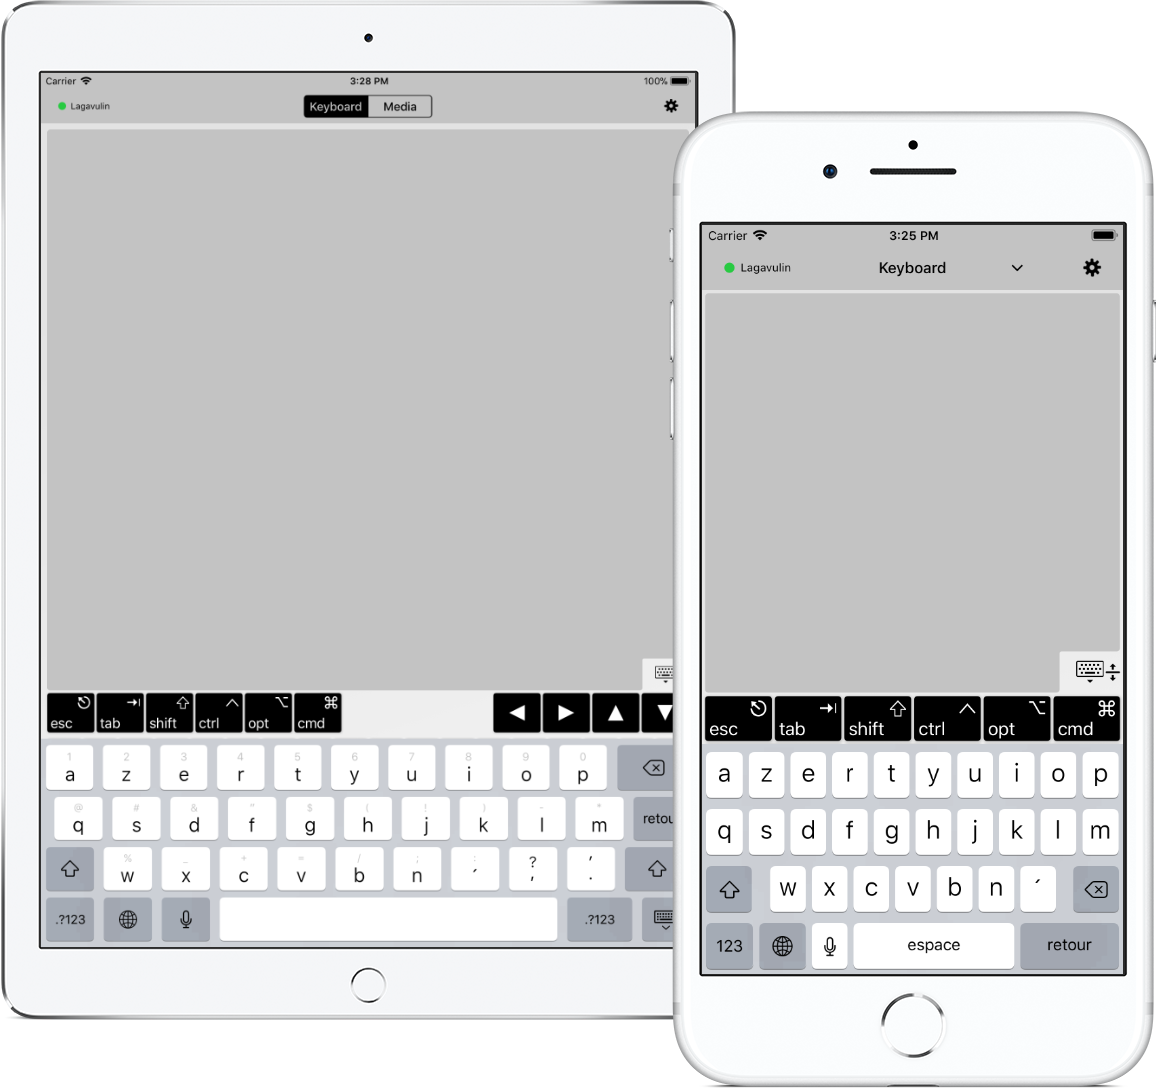 TouchPad - Turn your iOS device into a virtual numeric